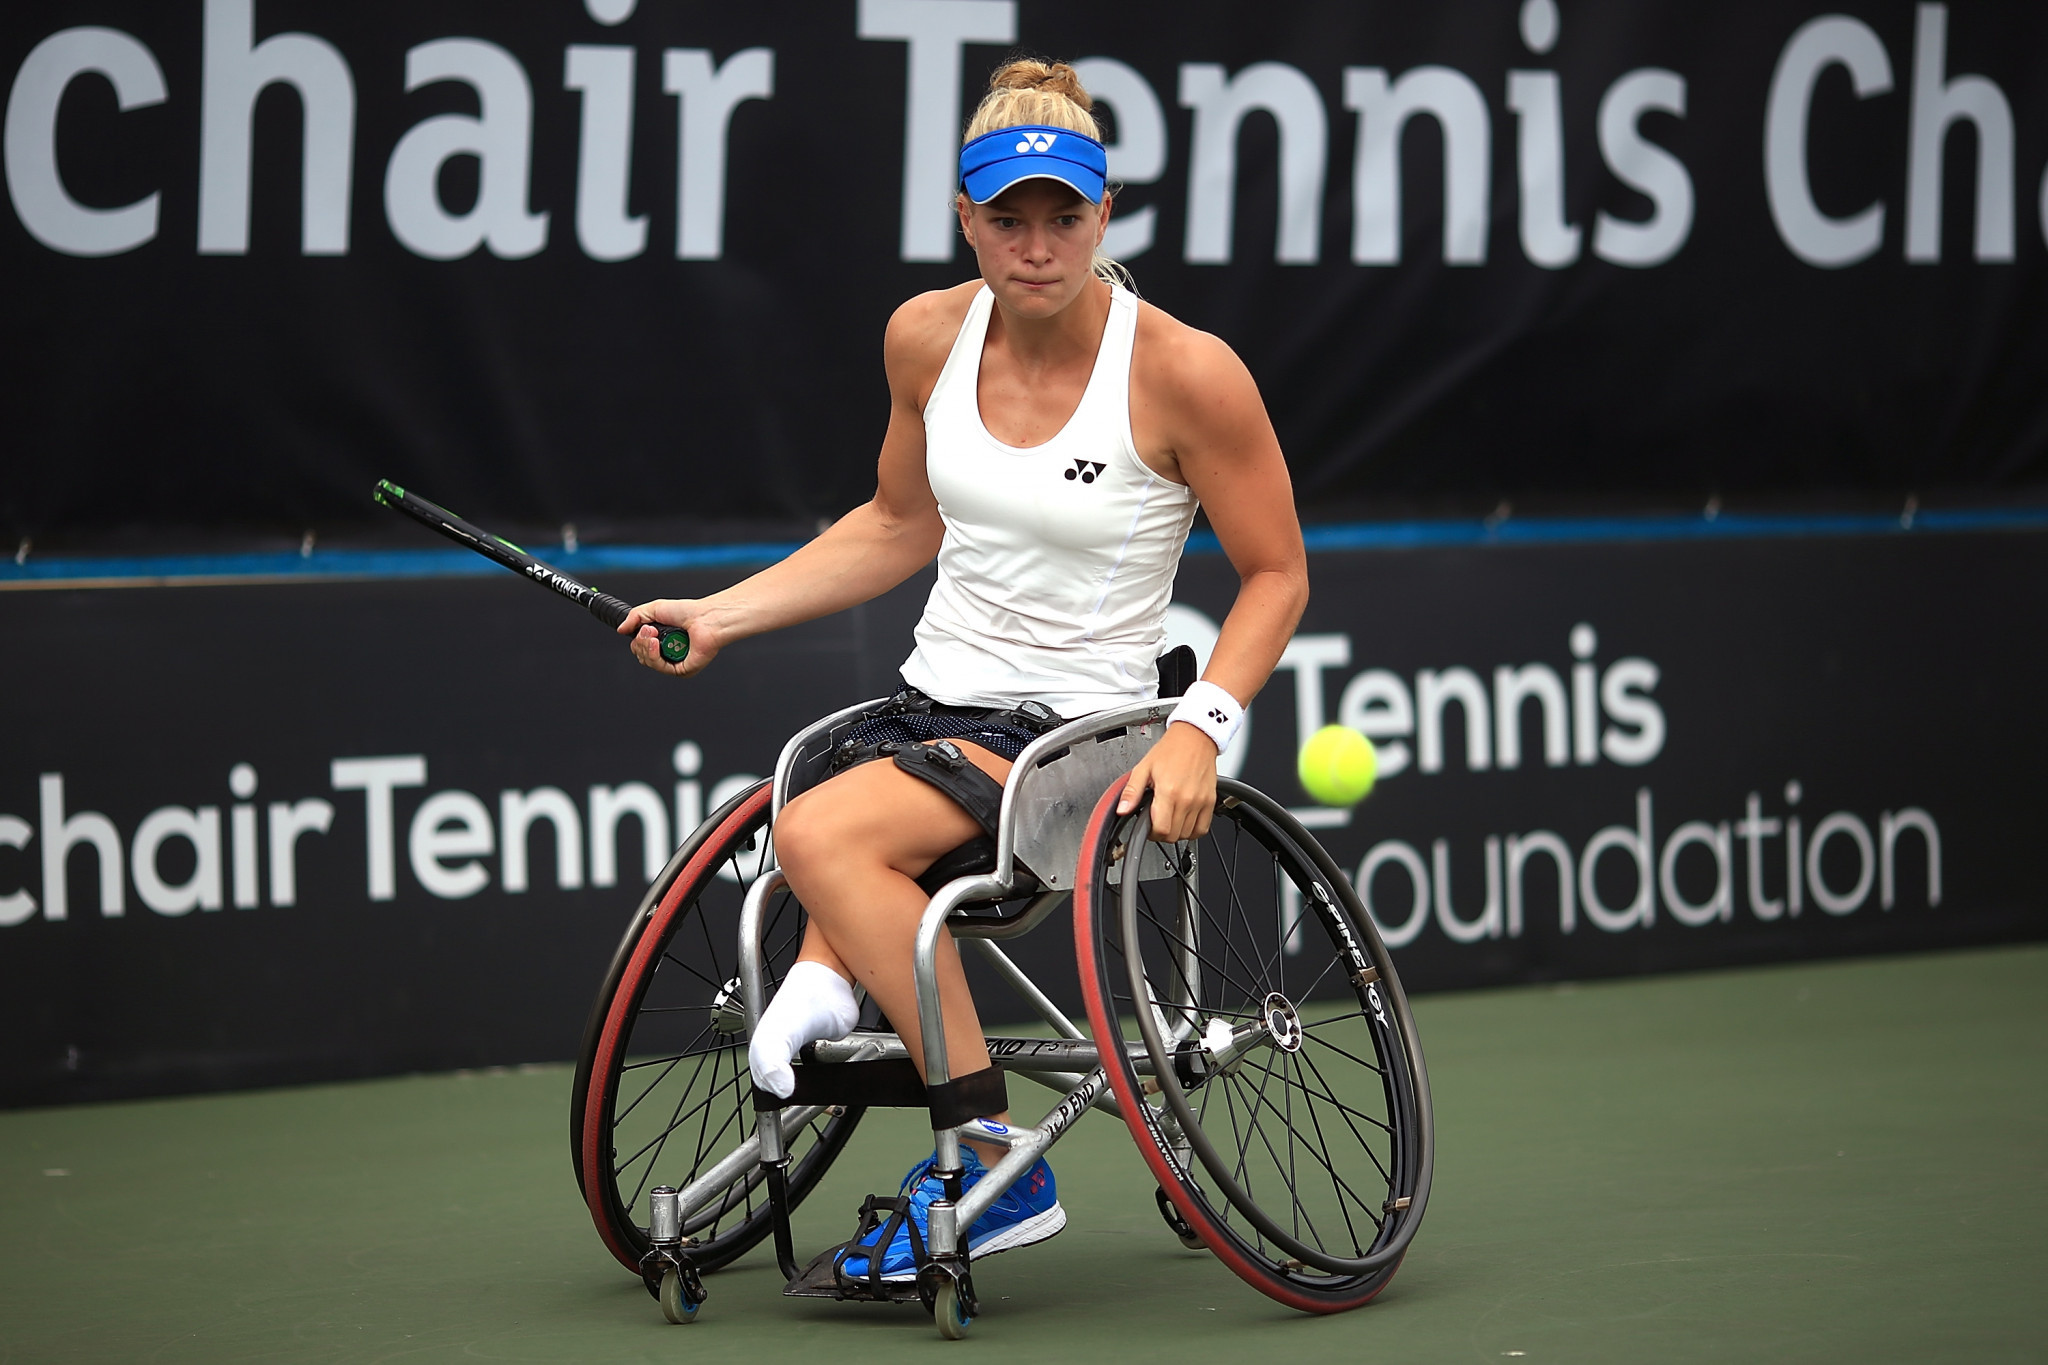 The Netherlands' Diede de Groot is the reigning champion in the women's singles event ©Getty Images